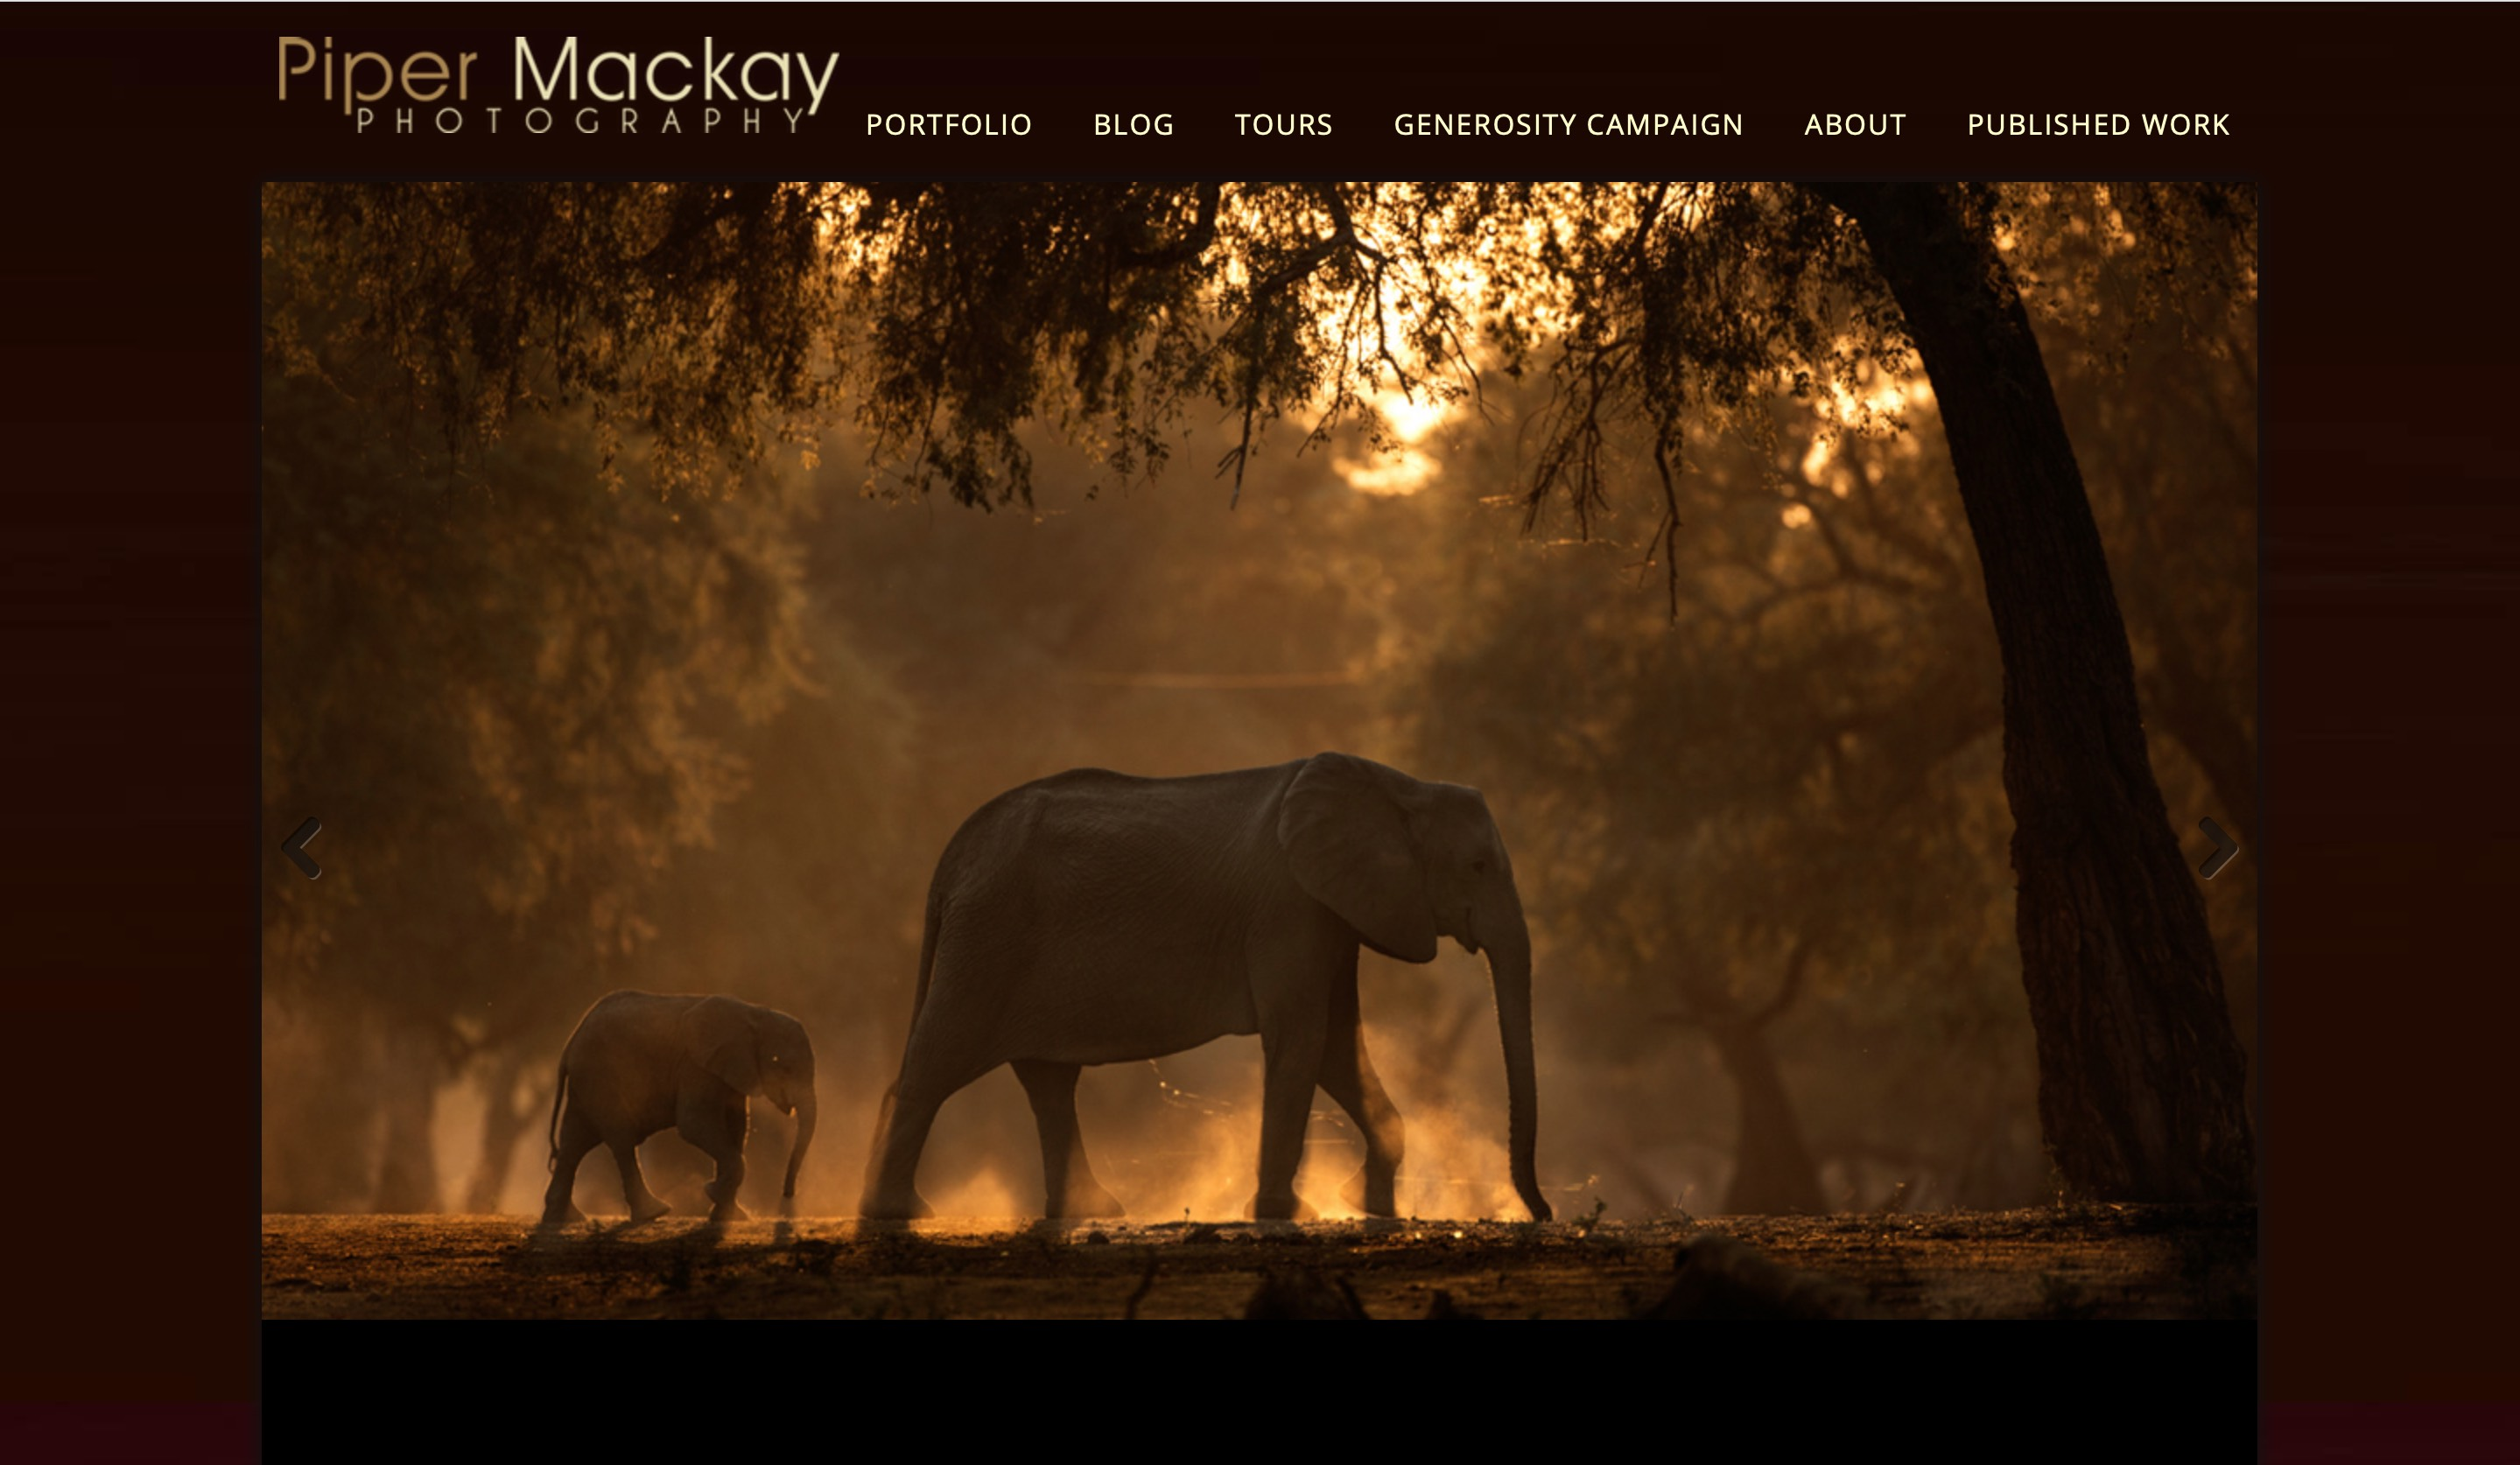 Piper Mackay website home page screenshot